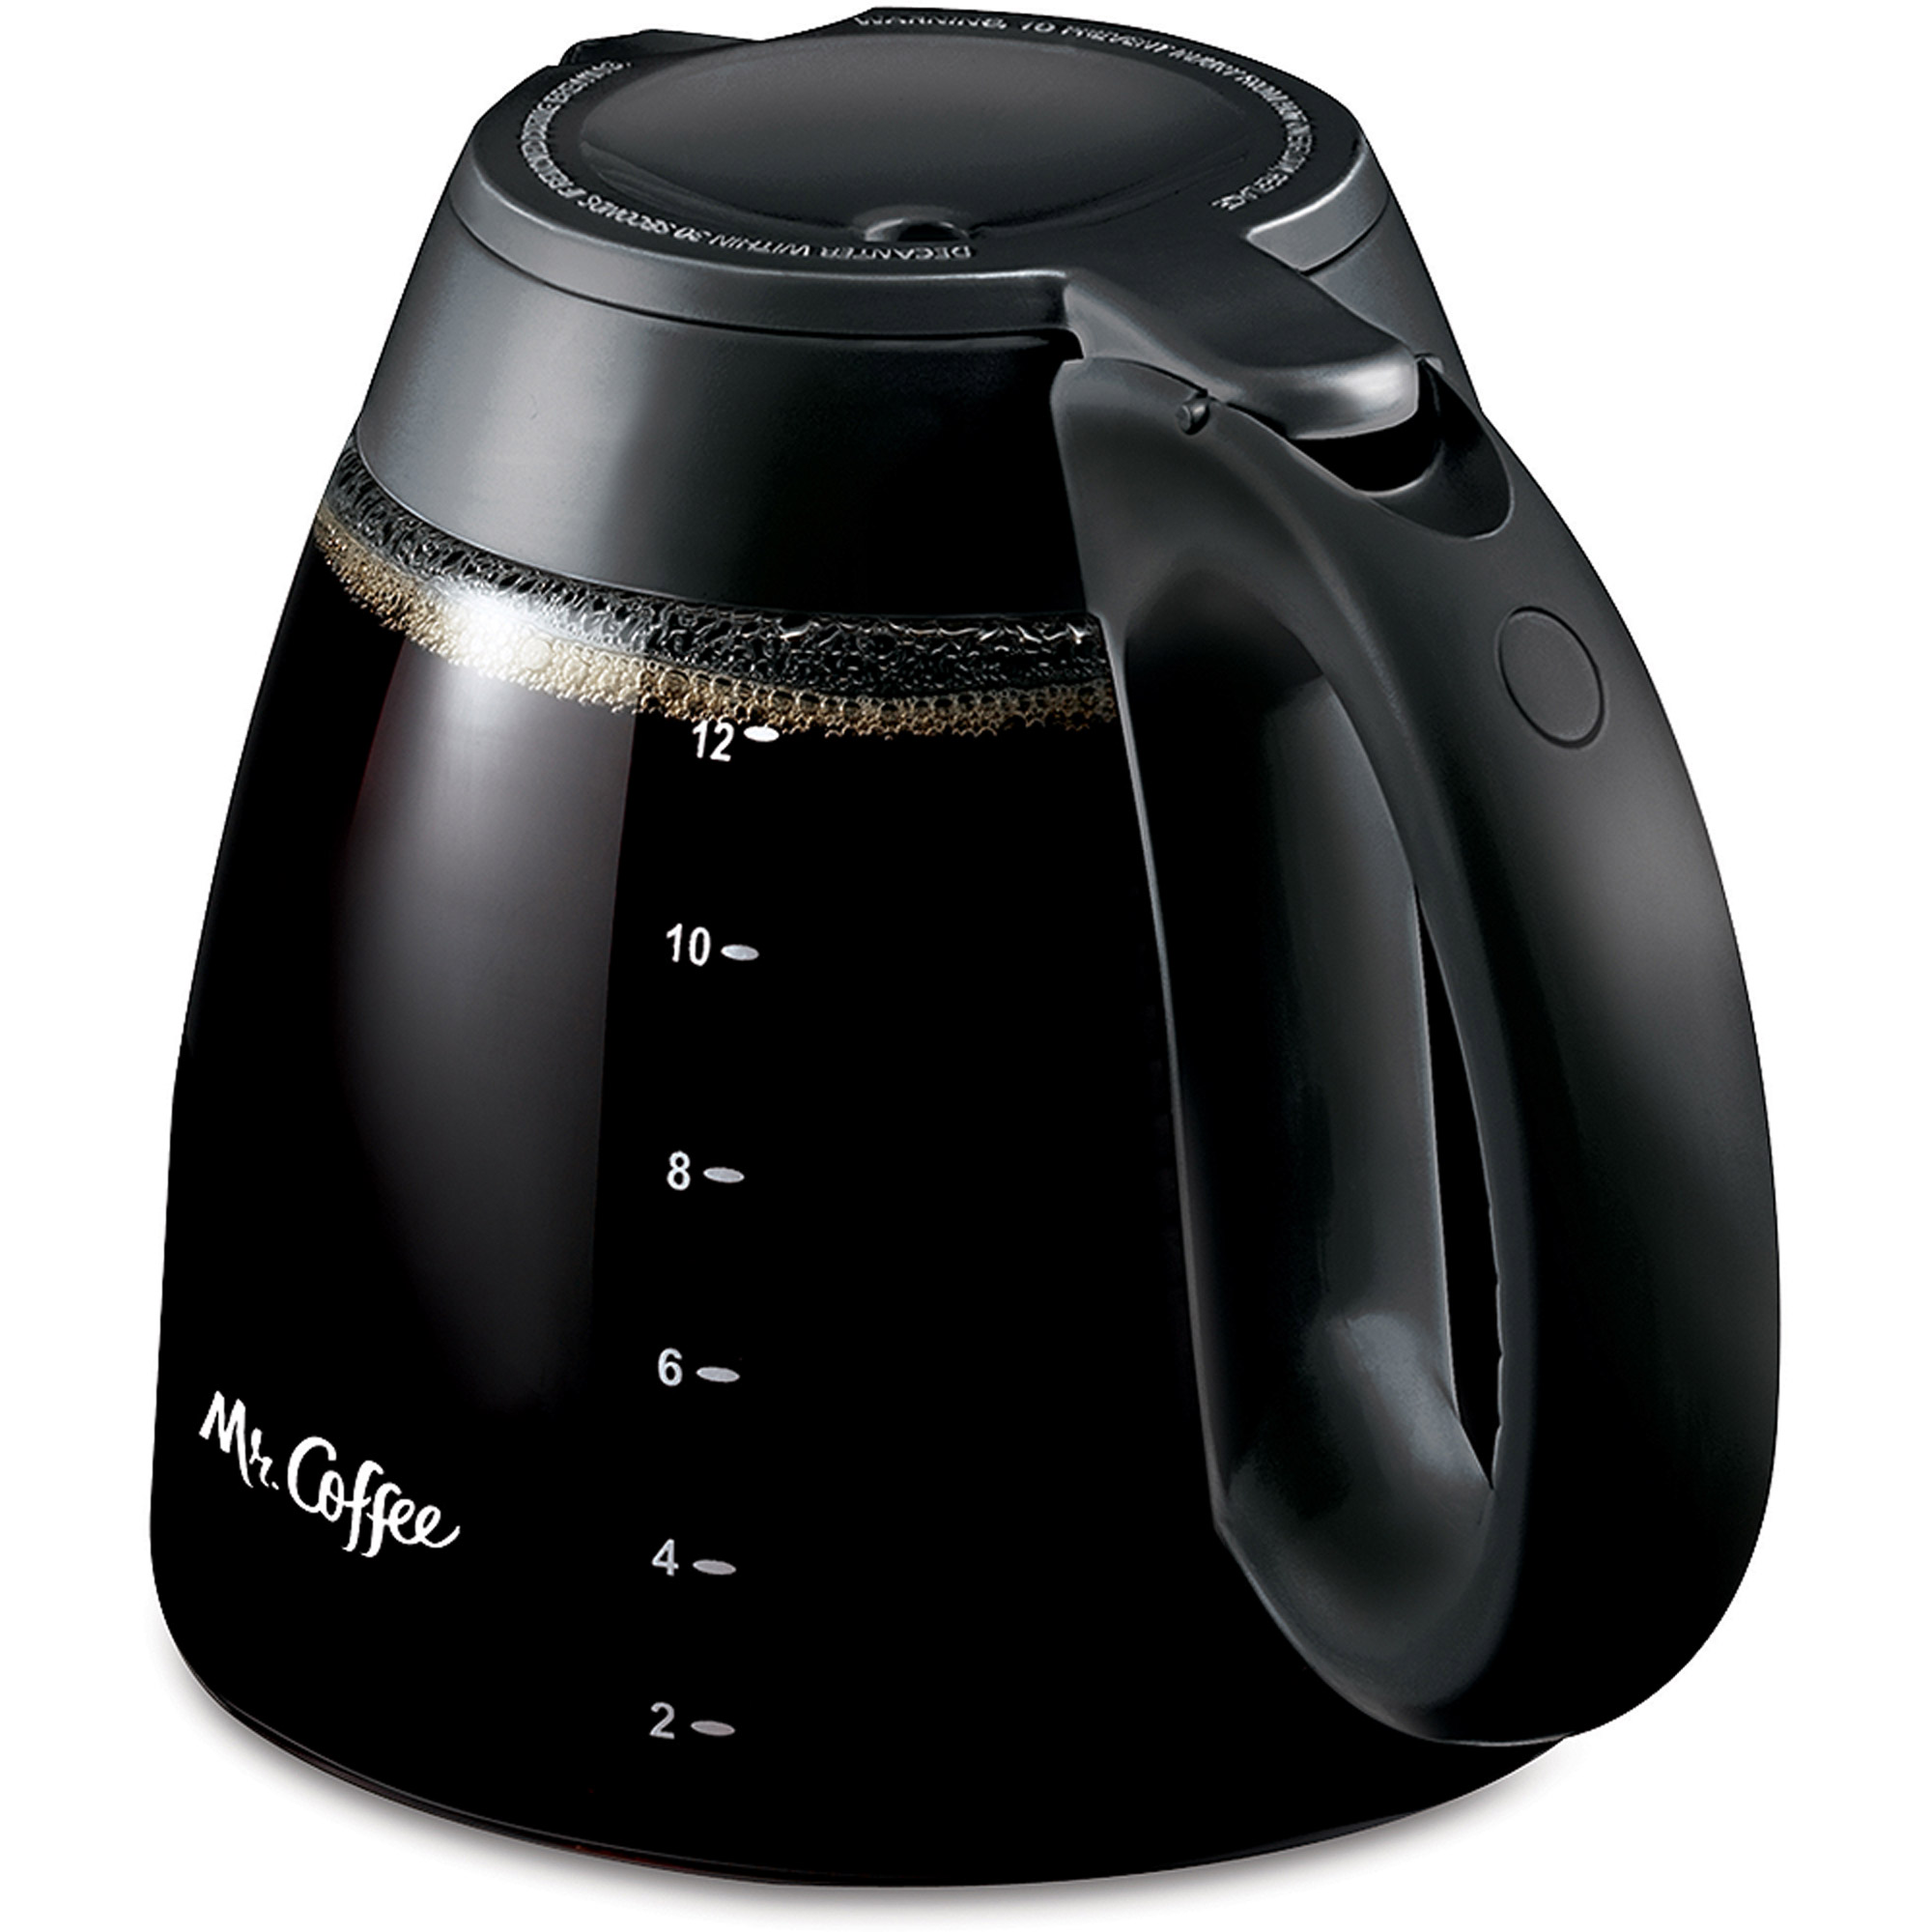 Mr. Coffee ISD13 12-Cup Replacement Decanter for all IS and FT Mr. Coffee series coffeemakers, ISD13